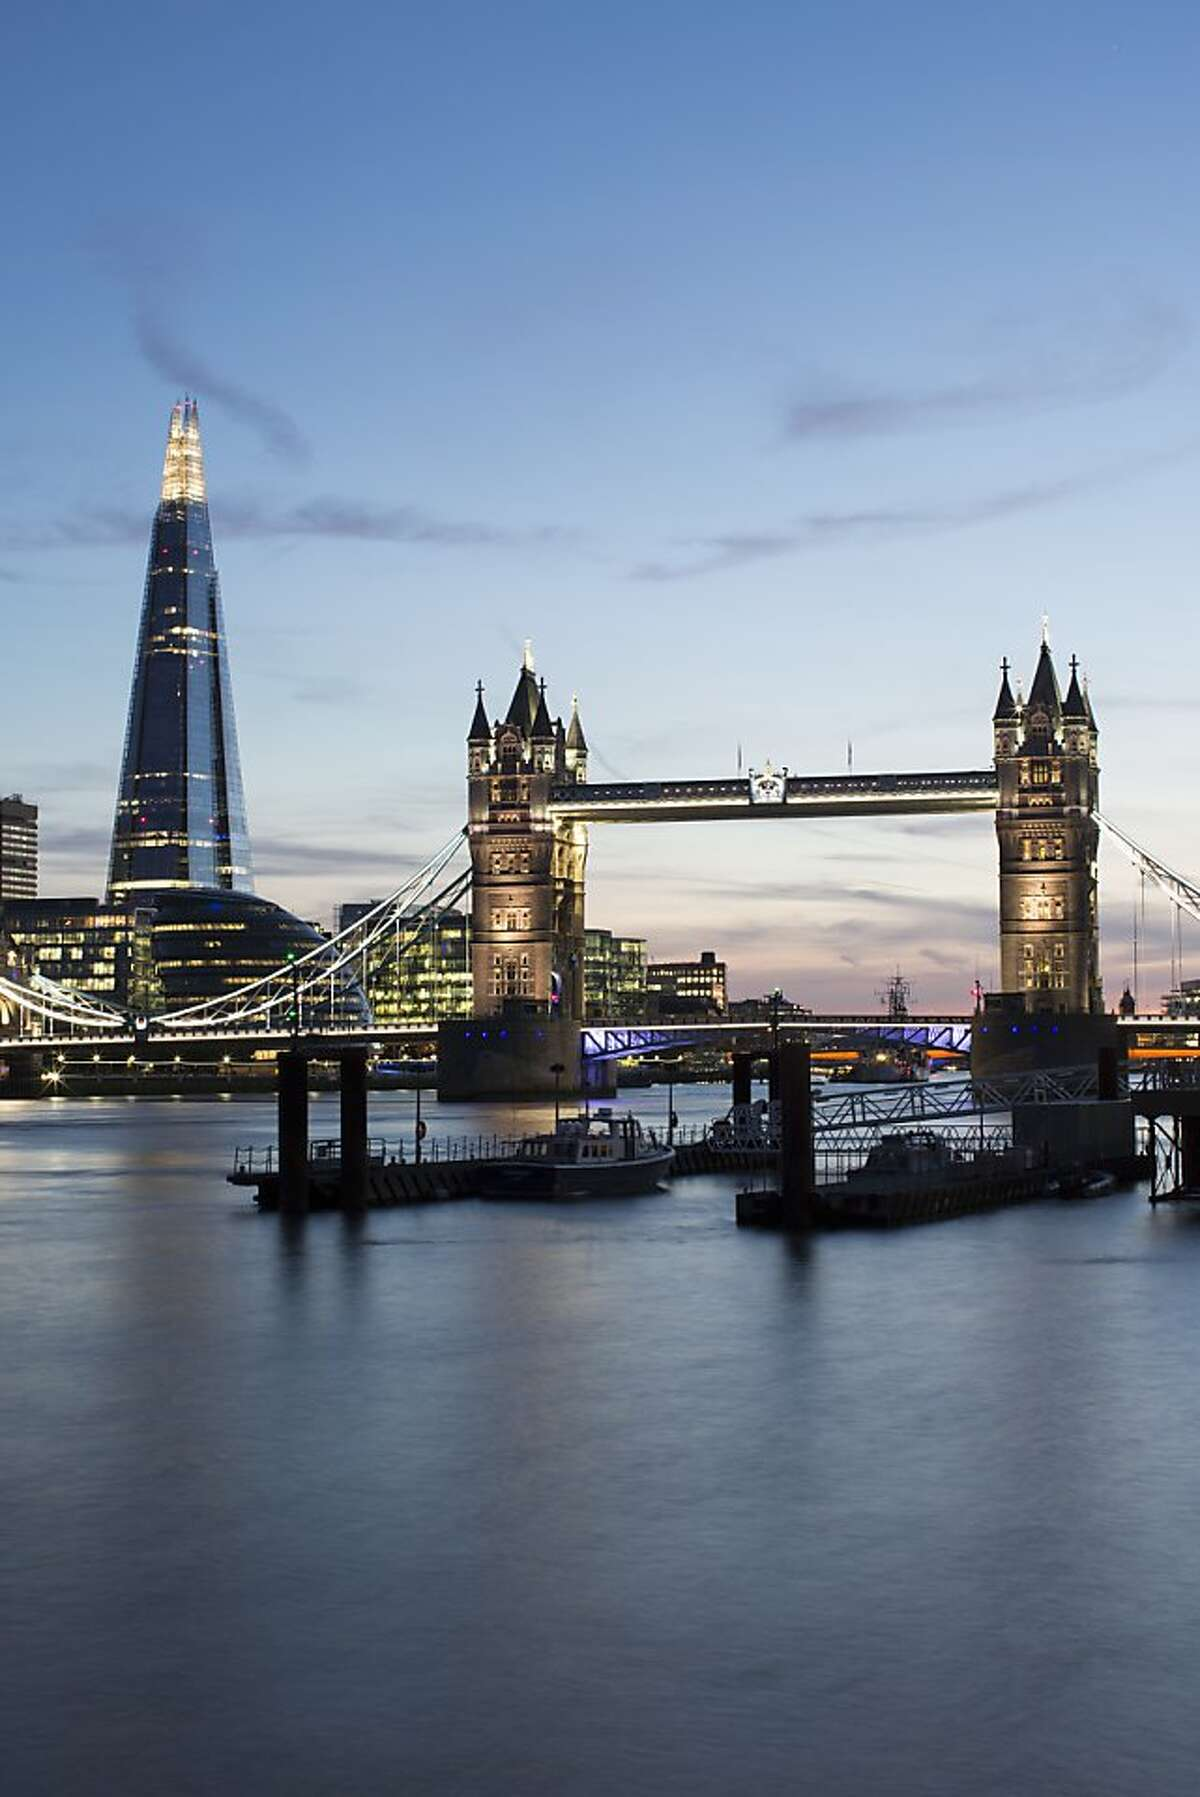 The Shard and Tower Bridge at sunset in London.